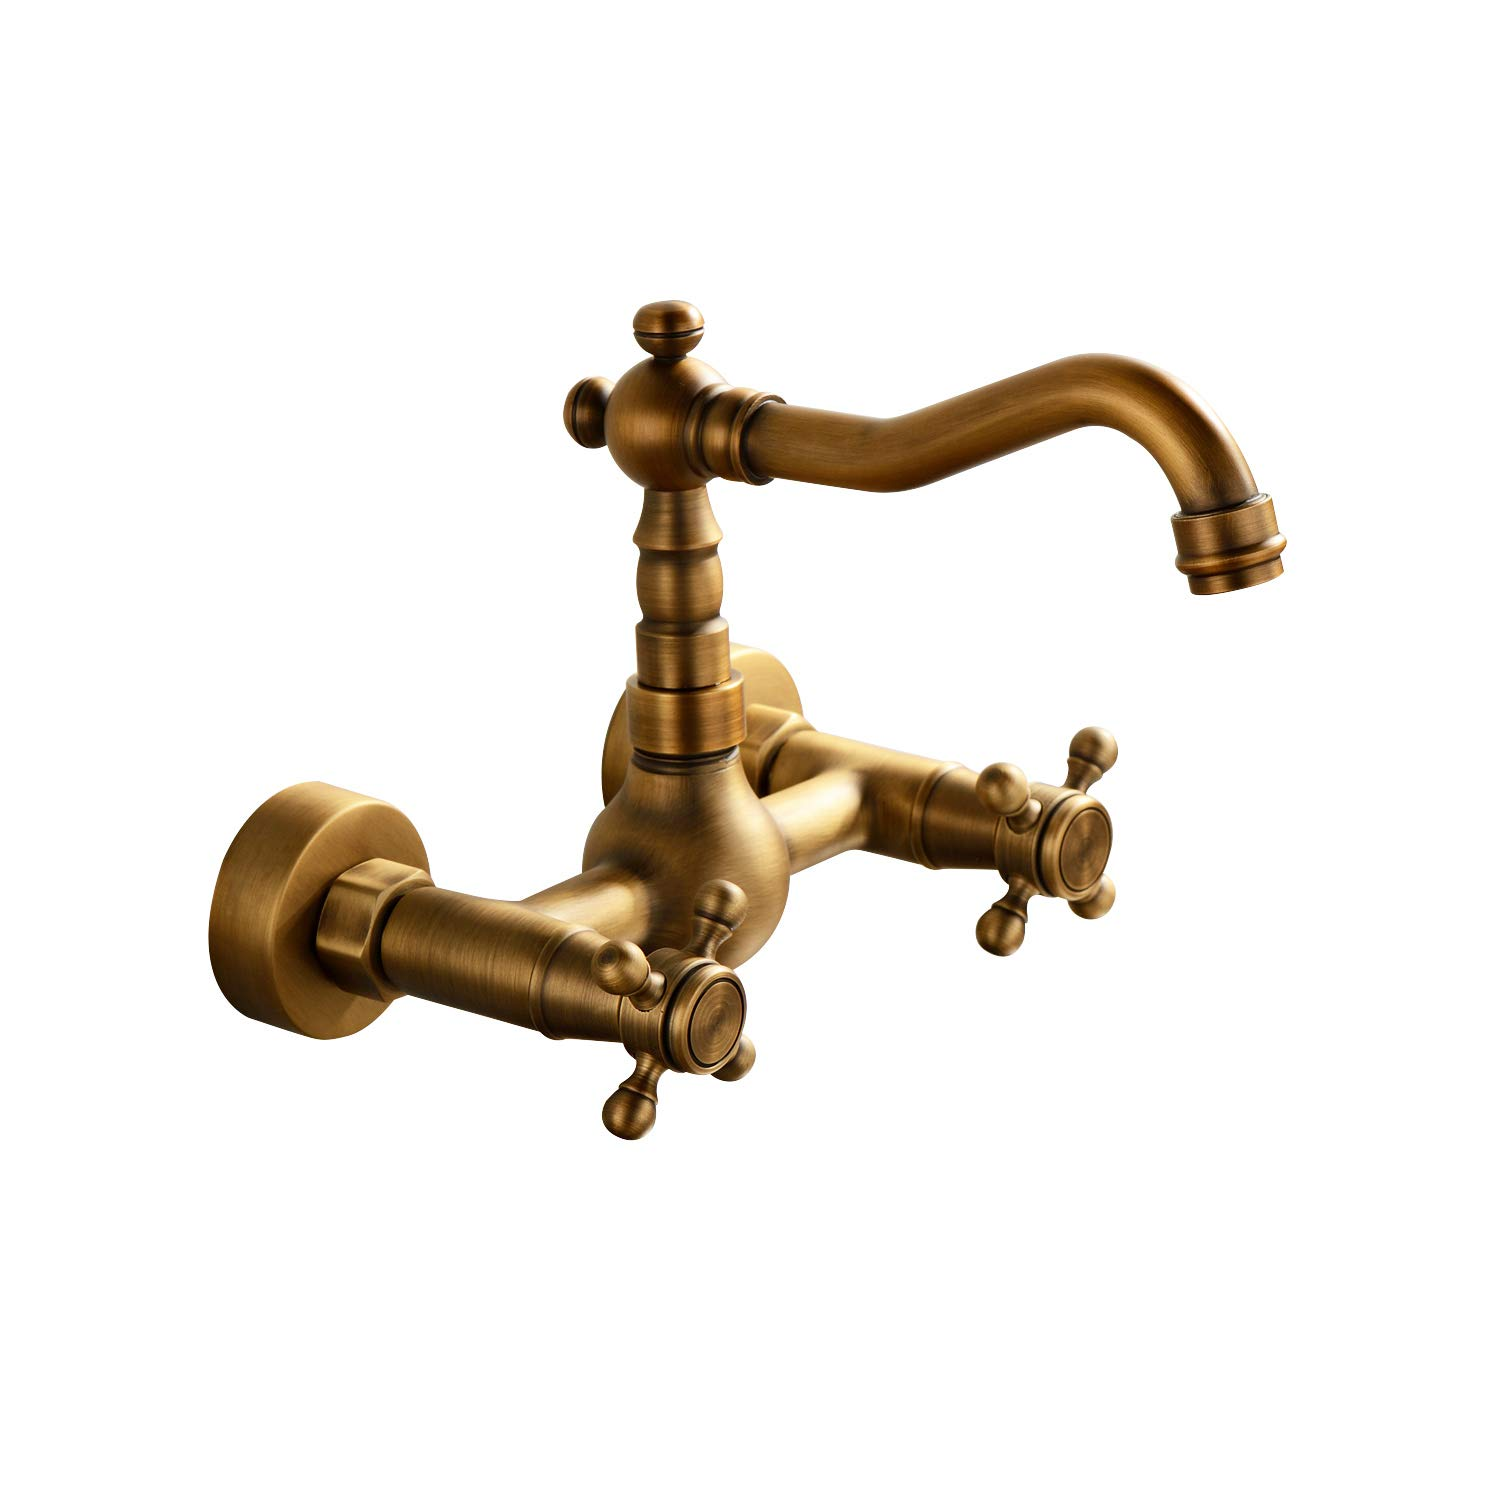 Sprinkle Antique Inspired Solid Brass Kitchen Faucet Wall Mount Bronze Two Holes Handles Long Curve Spout Bar Faucets Bamboo Shape Vintage Retro Design Lavatory Bathtub Mixer Taps Bath Shower Faucets